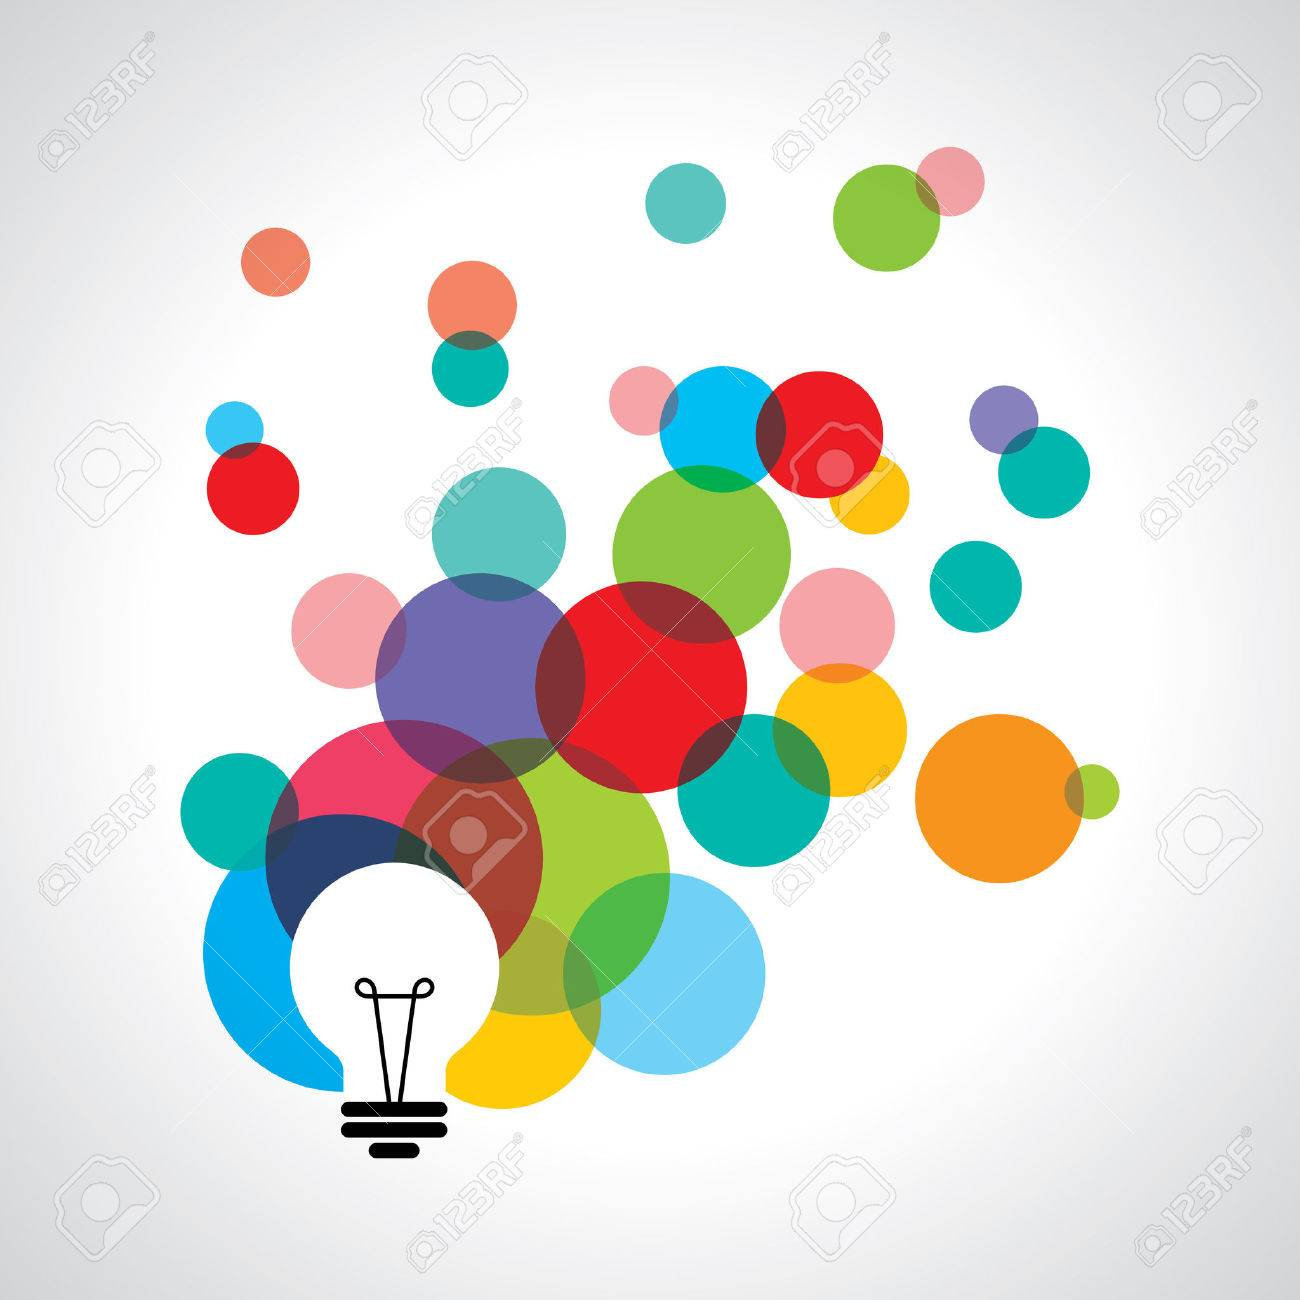 light bulb icons with concept of idea. Standard-Bild - 37109768